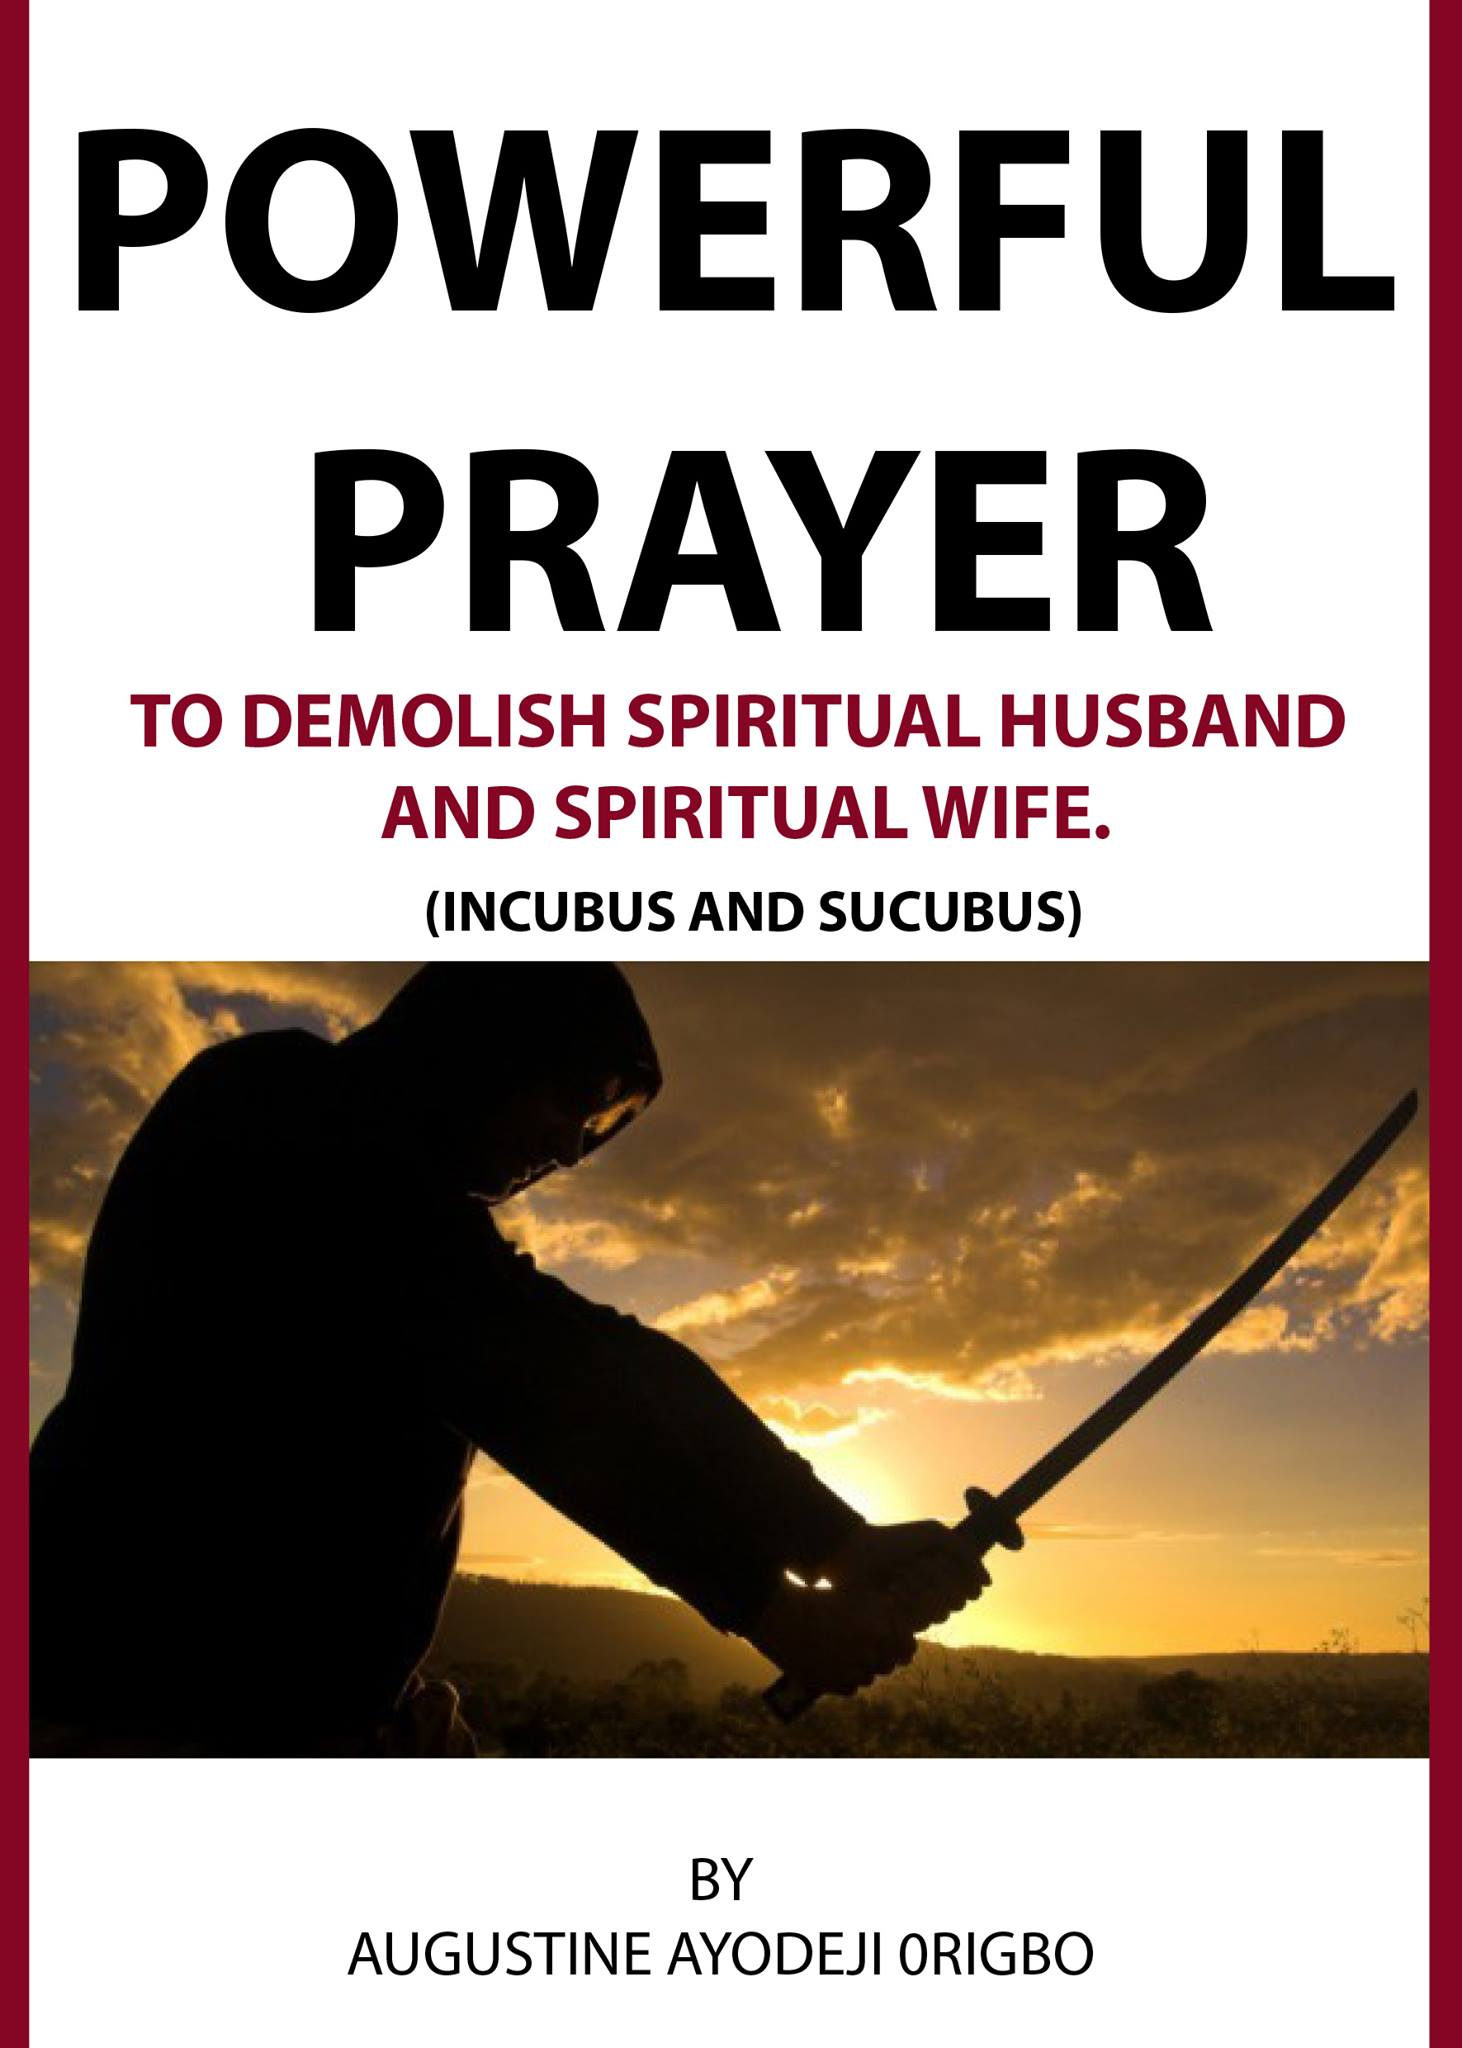 Powerful Prayer Points To Demolish Spiritual Husband And Spiritual Wife   (Incubus And Sucubus), an Ebook by Augustine Ayodeji Origbo